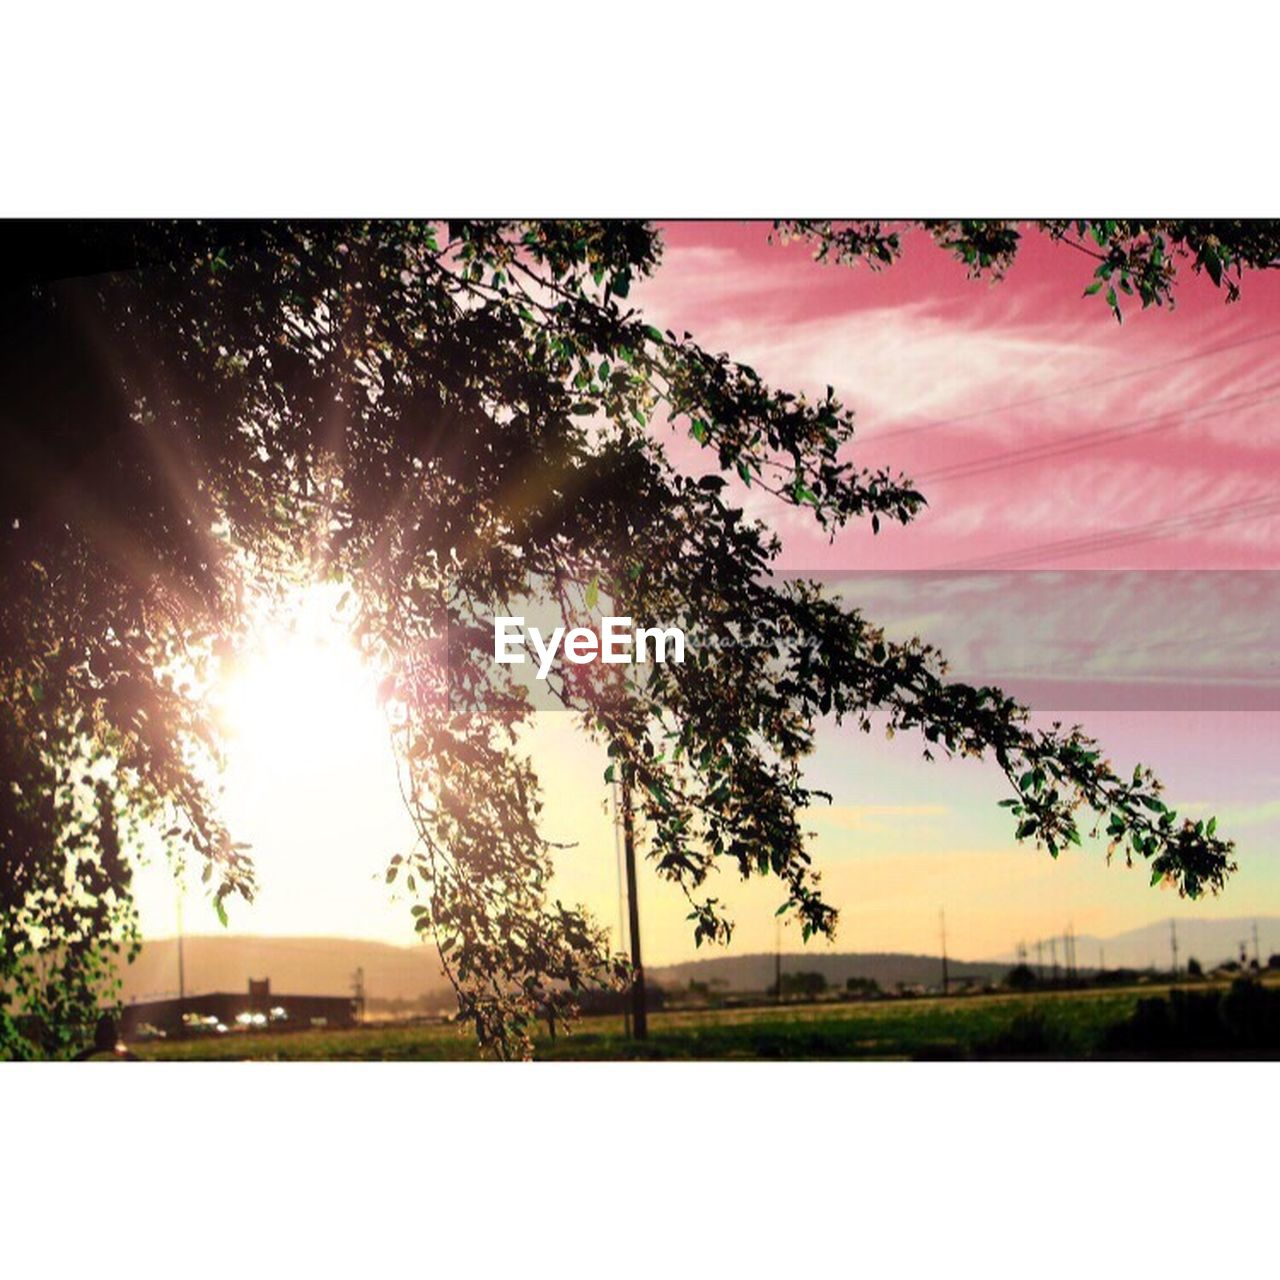 tree, nature, outdoors, no people, sunlight, sunset, tranquility, sun, scenics, day, beauty in nature, growth, branch, sky